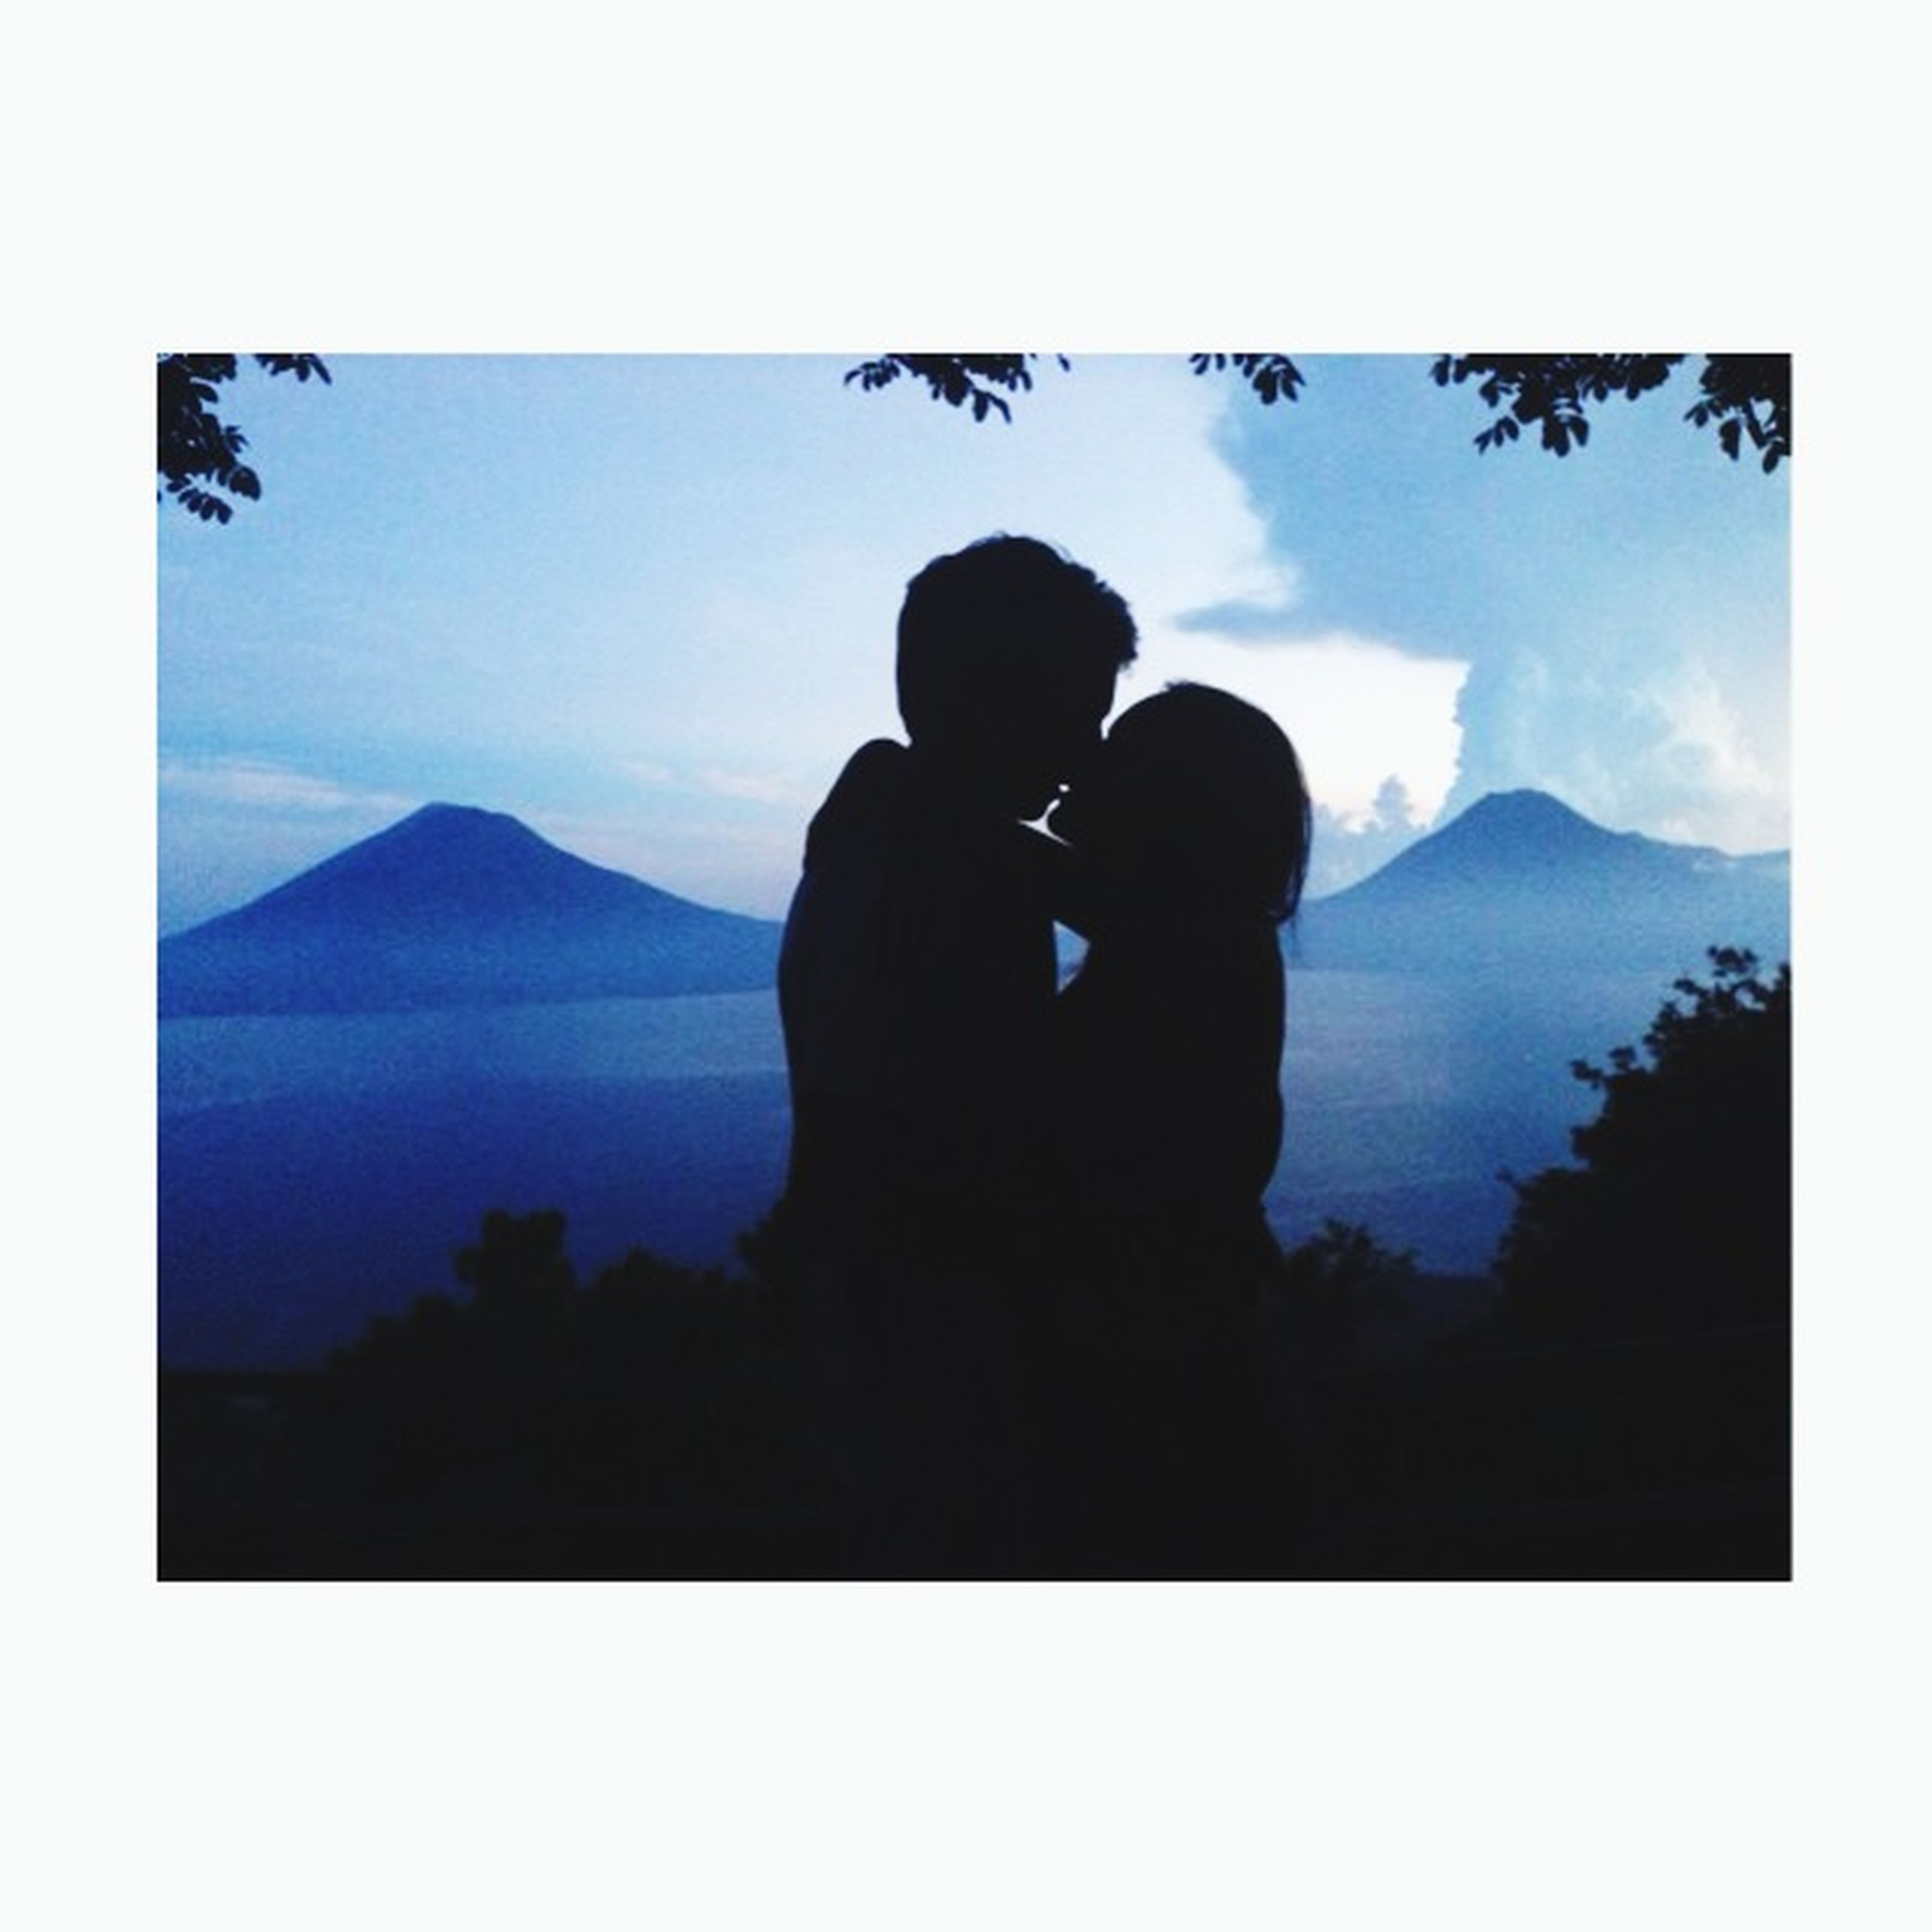 silhouette, lifestyles, mountain, sky, leisure activity, rear view, men, standing, togetherness, tranquility, nature, tranquil scene, transfer print, beauty in nature, scenics, full length, three quarter length